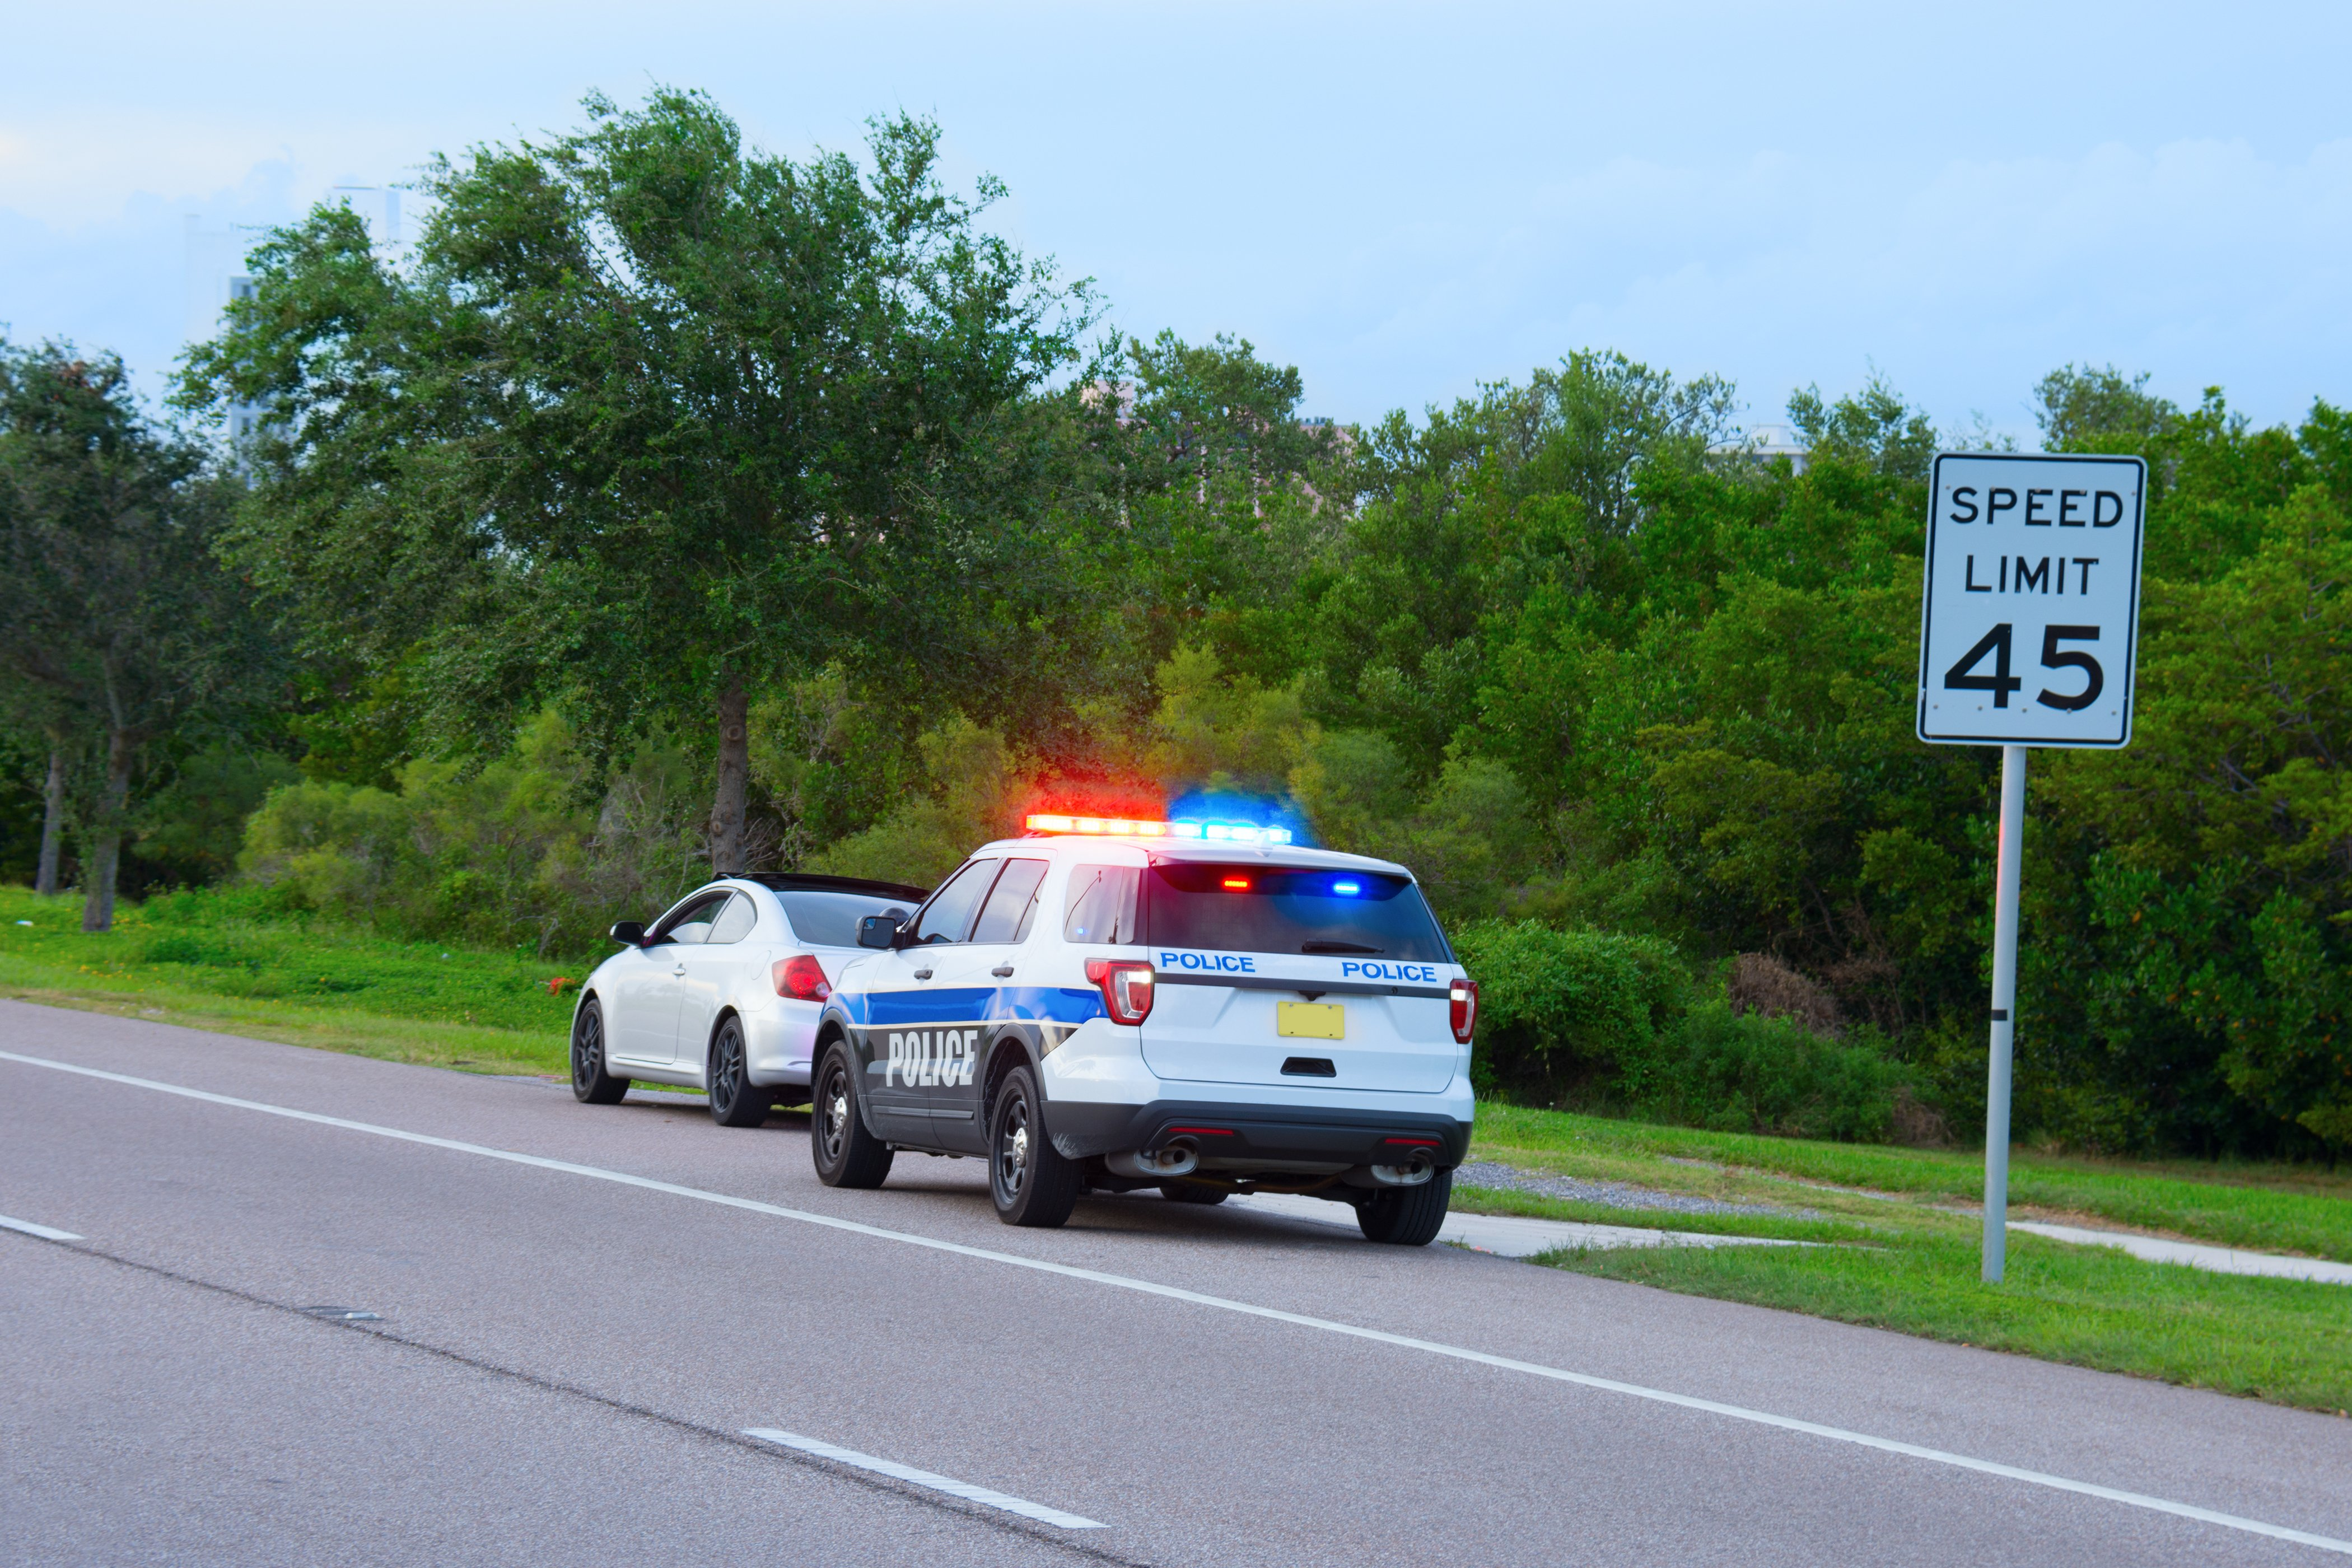 A police vehicle appears to be pulling a car over.   Photo; Shutterstock